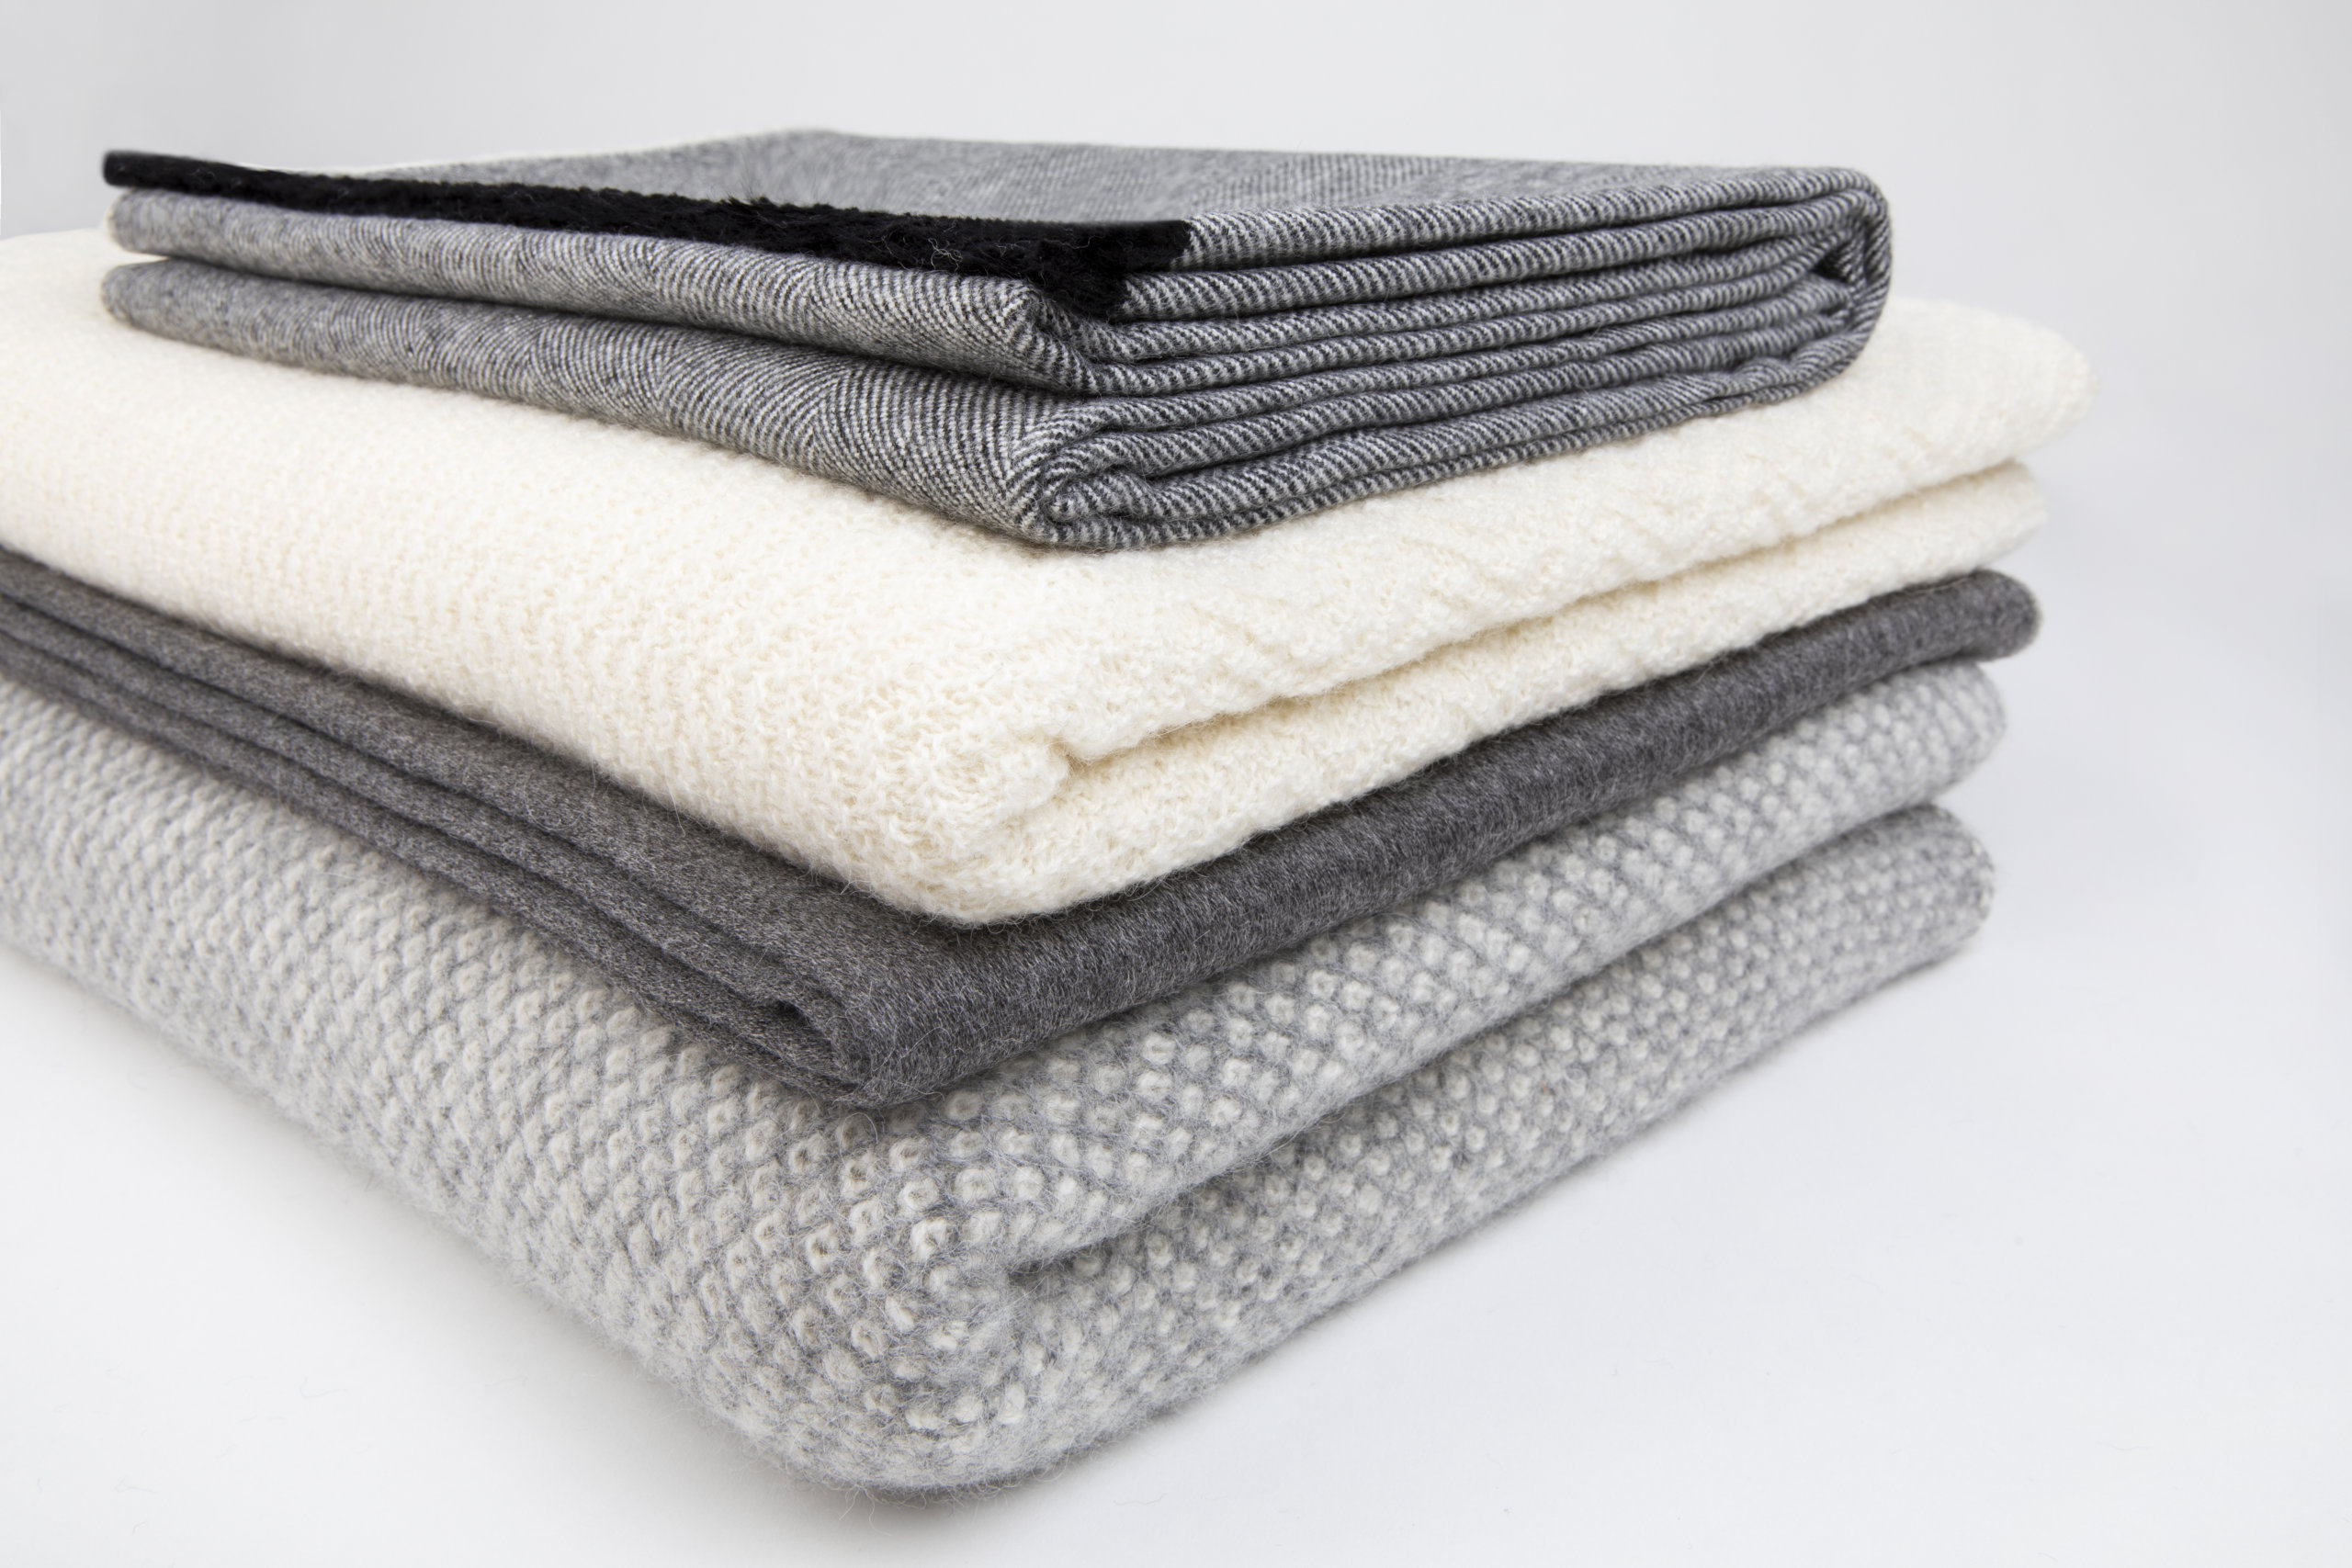 A pile of beautiful alpaca throws in neutral shades from Tuwi London